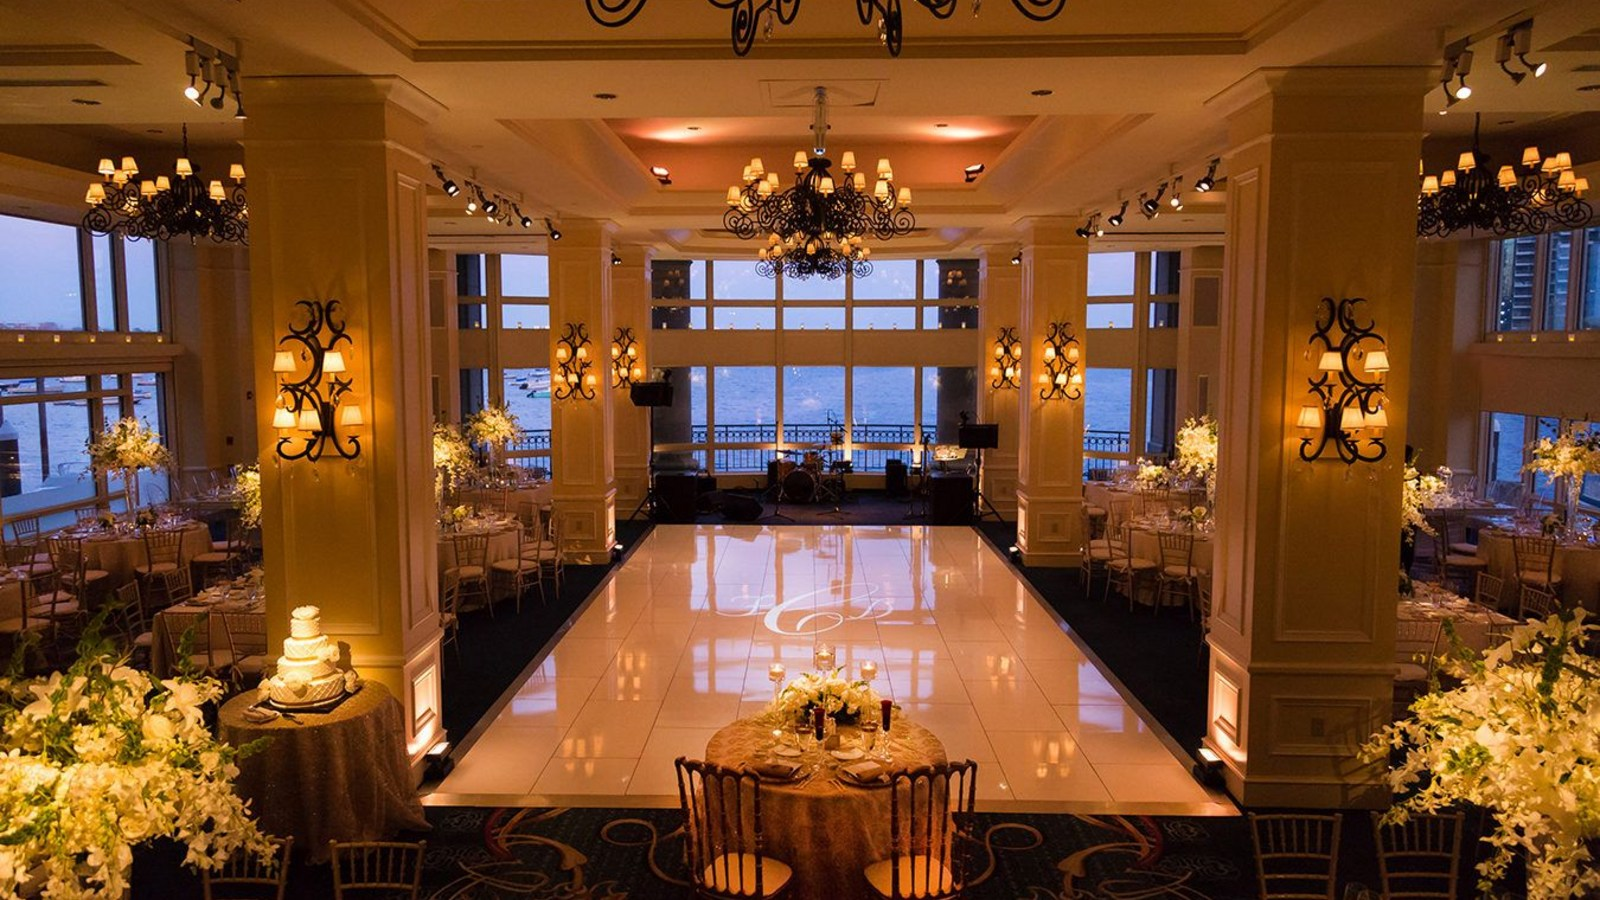 Grand ballroom set for wedding reception